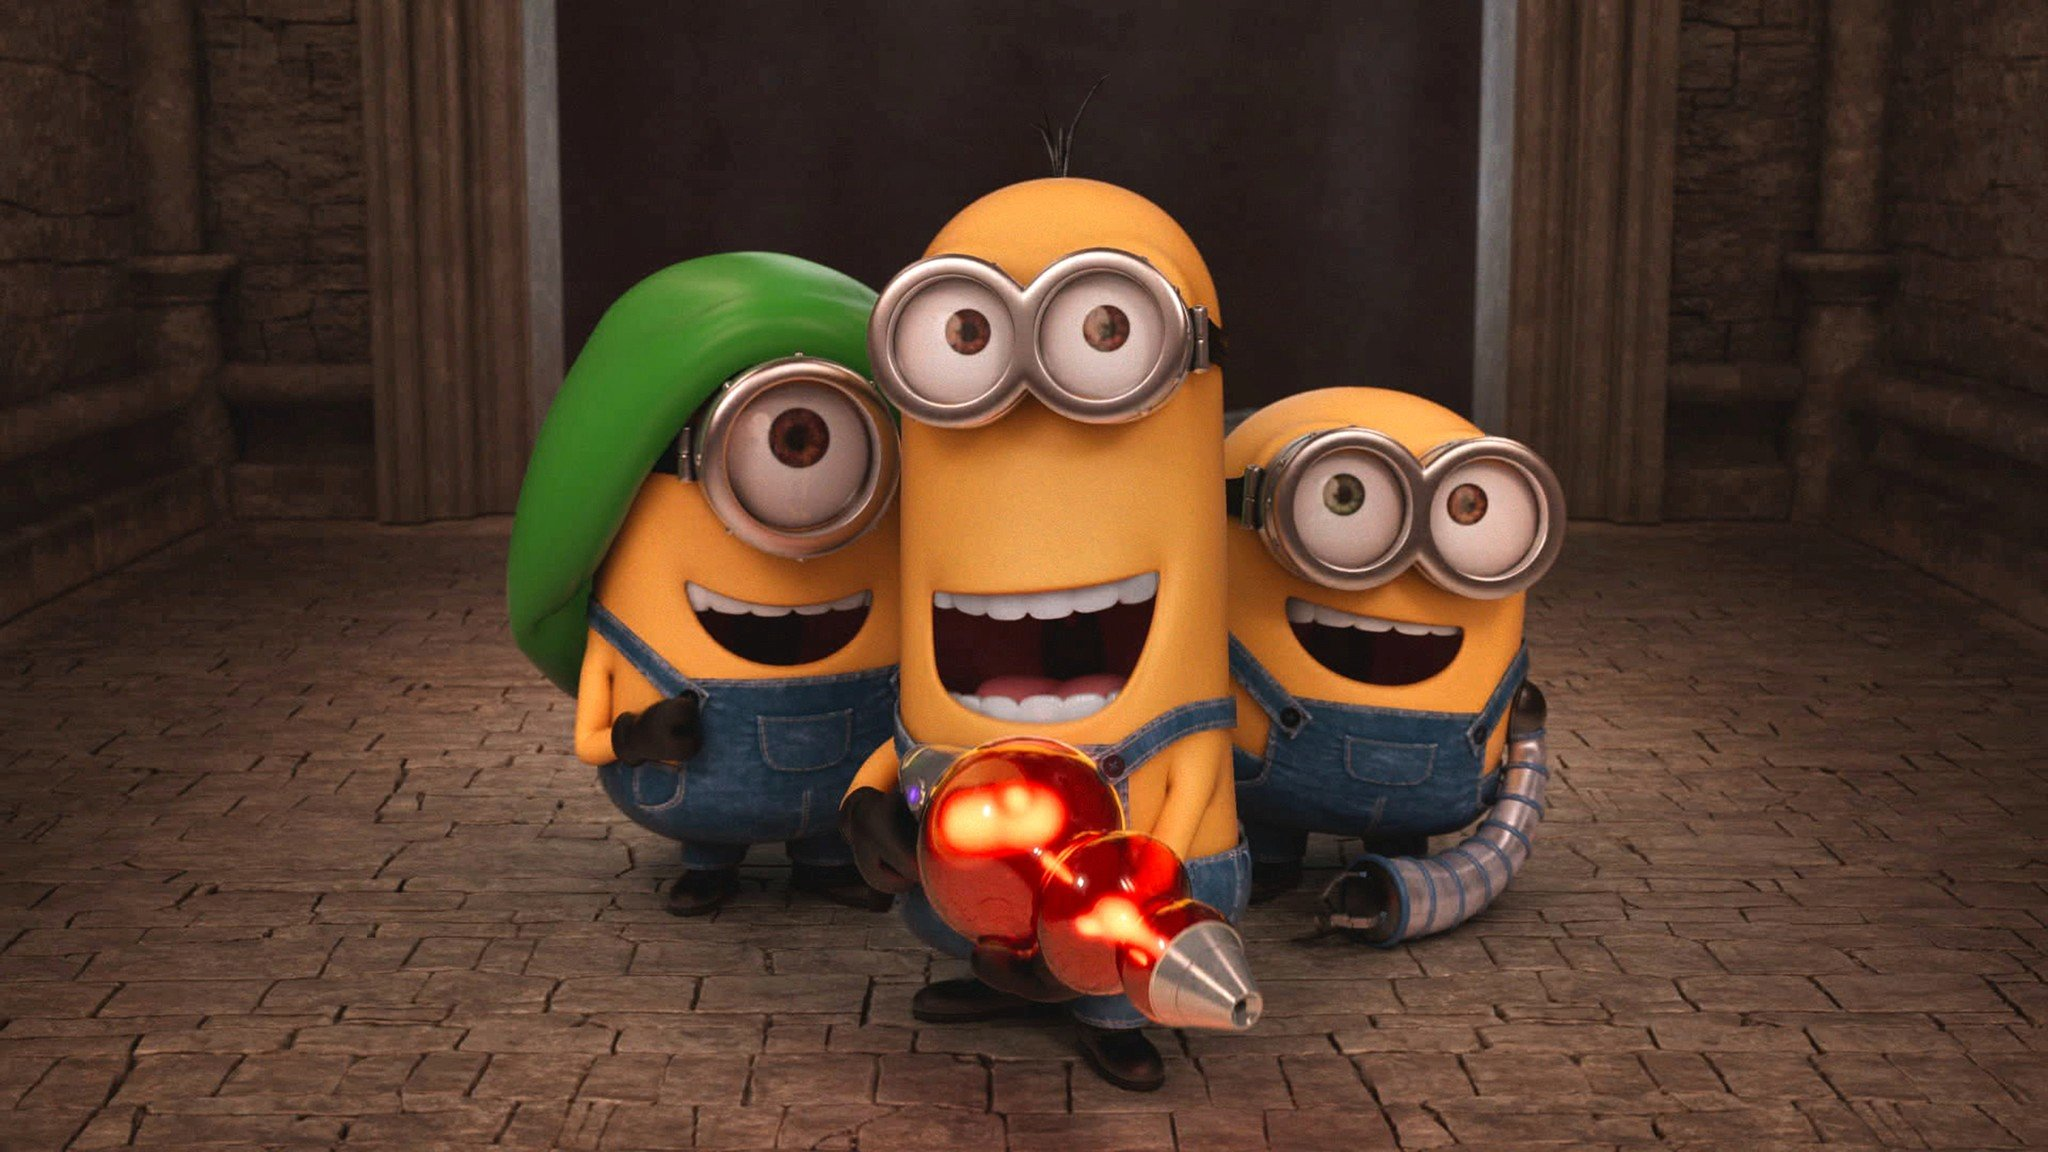 Free download Minions background ID:70239 hd 2048x1152 for PC